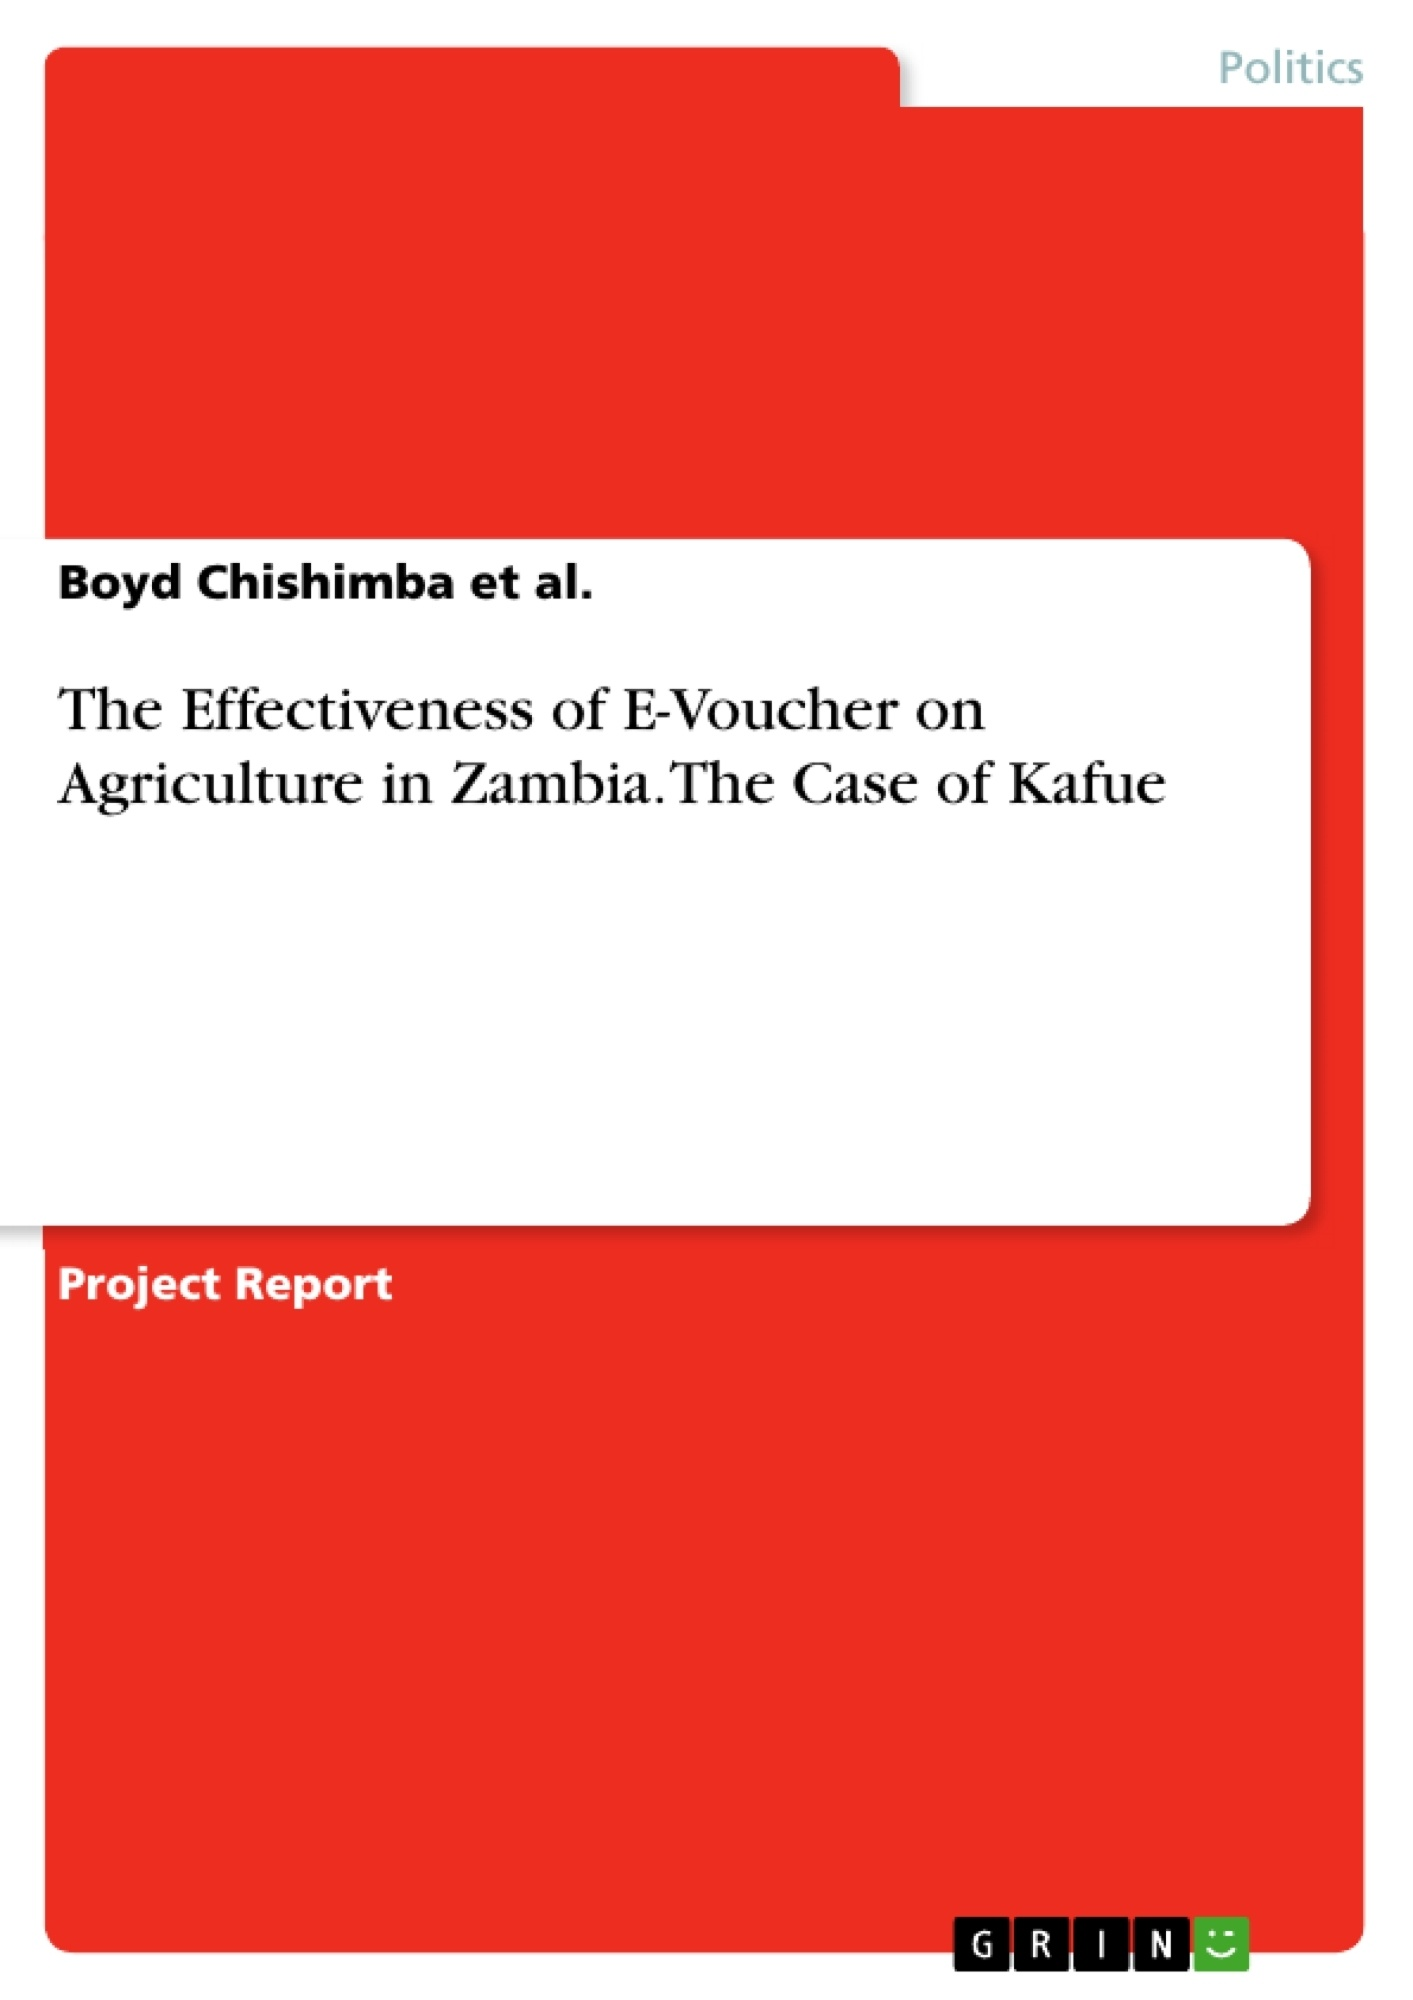 Title: The Effectiveness of E-Voucher on Agriculture in Zambia. The Case of Kafue